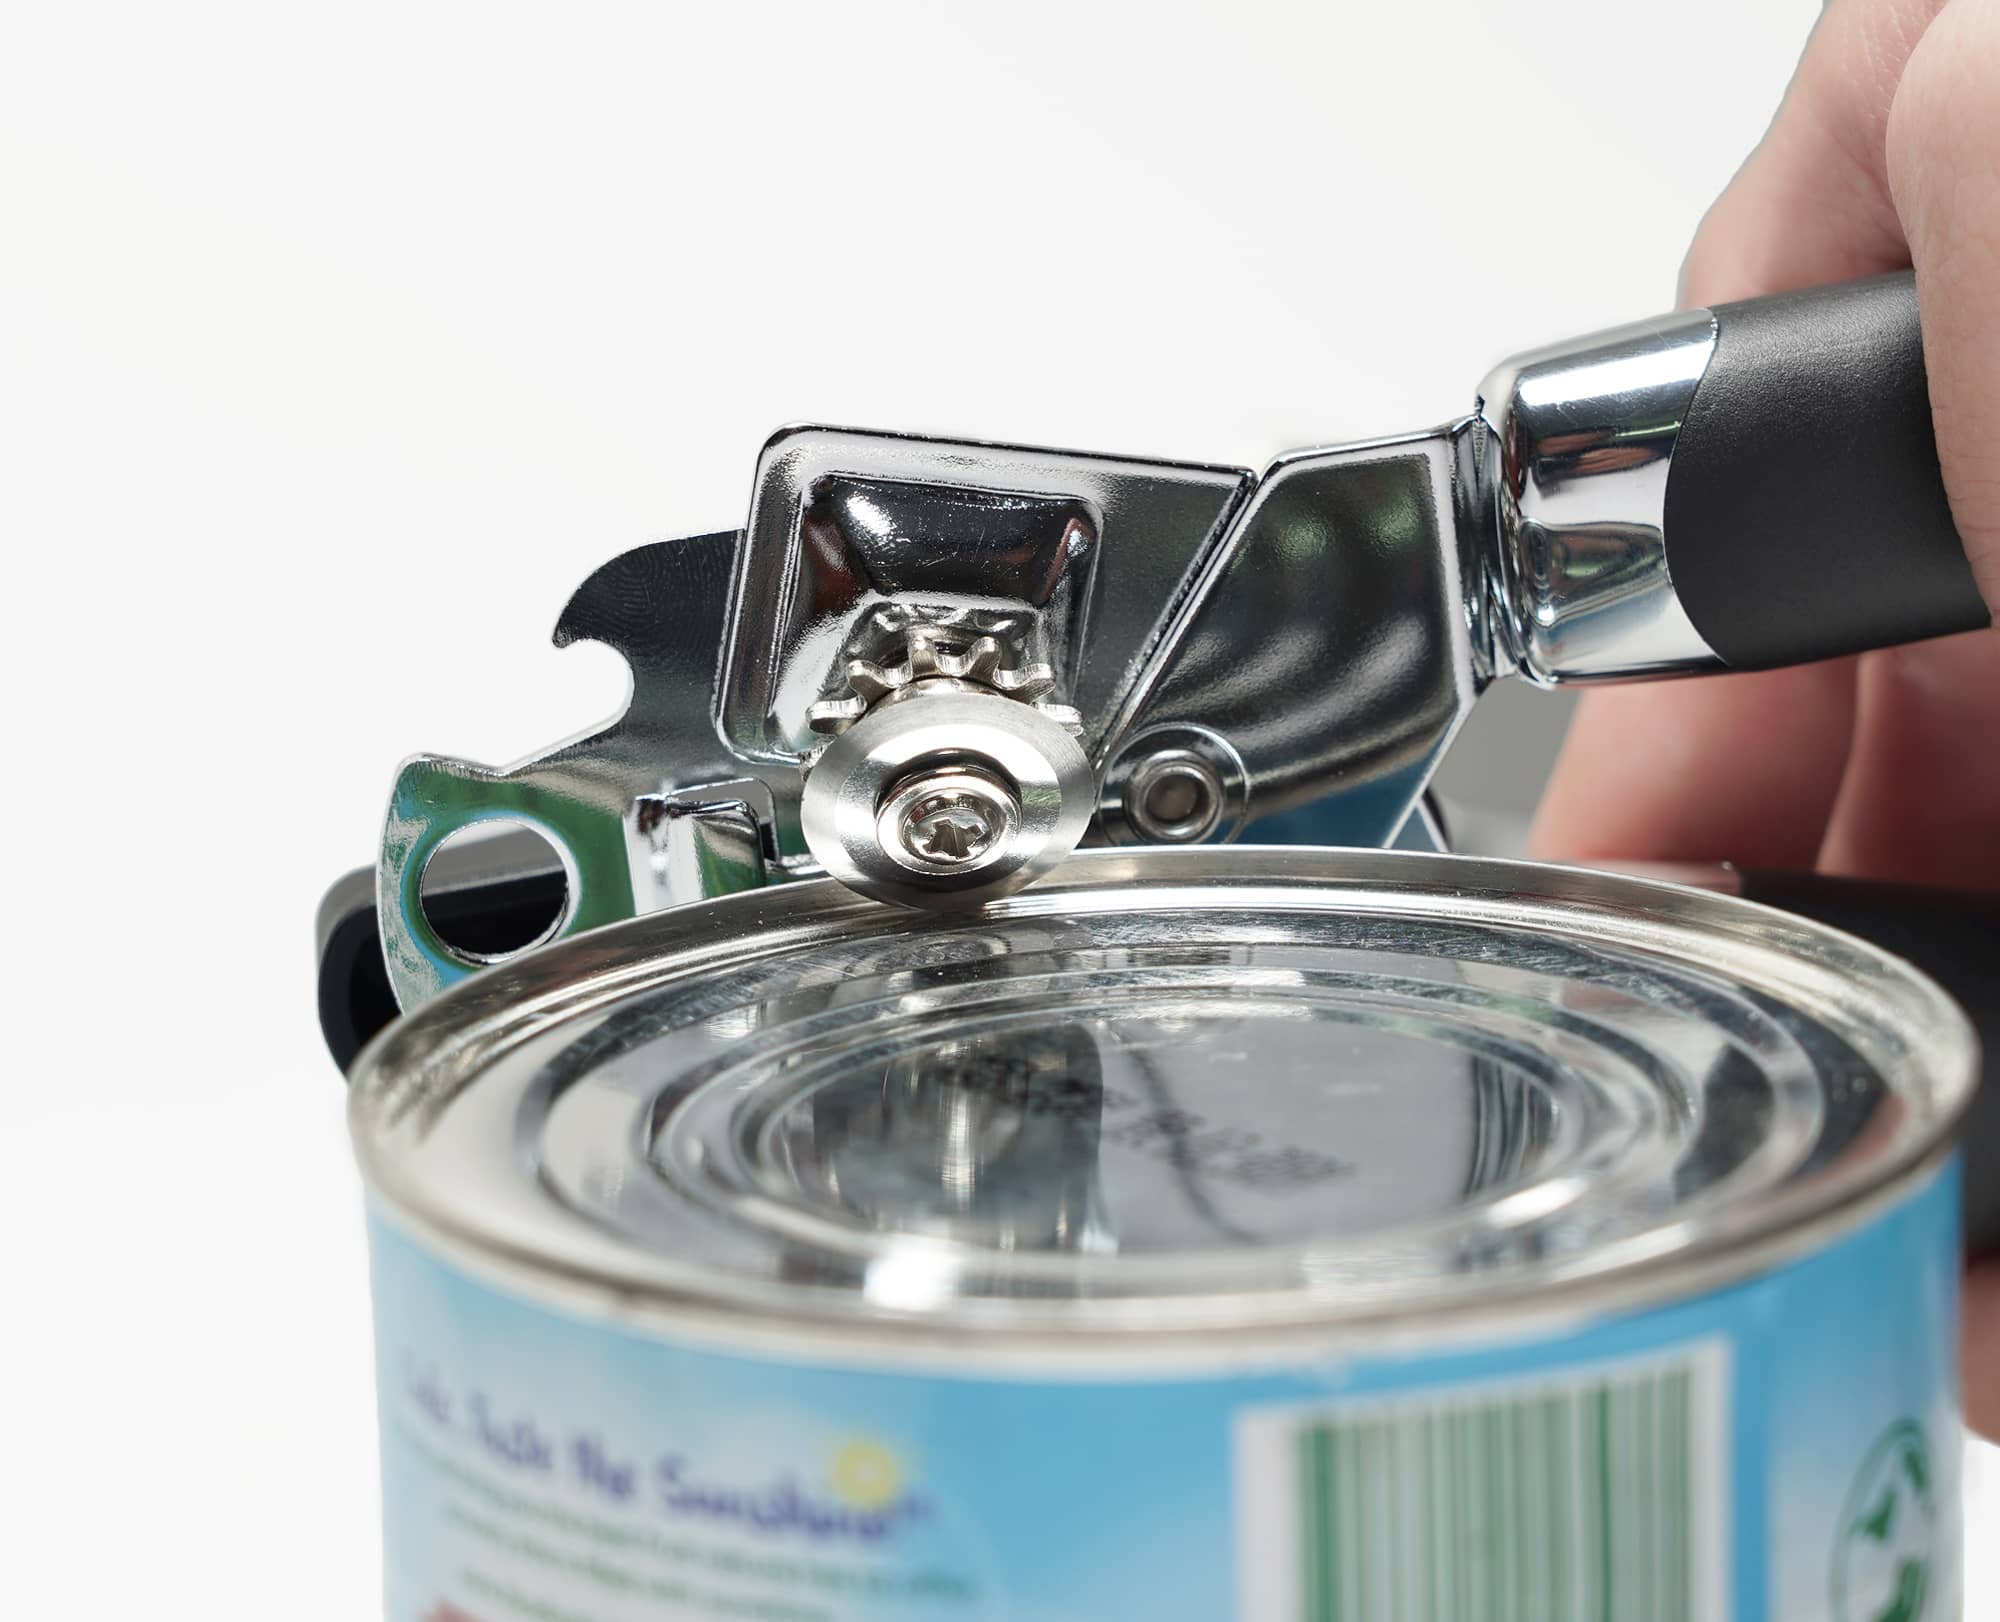 The cutting wheel of Benchusch Classia Can opener is cutting the can